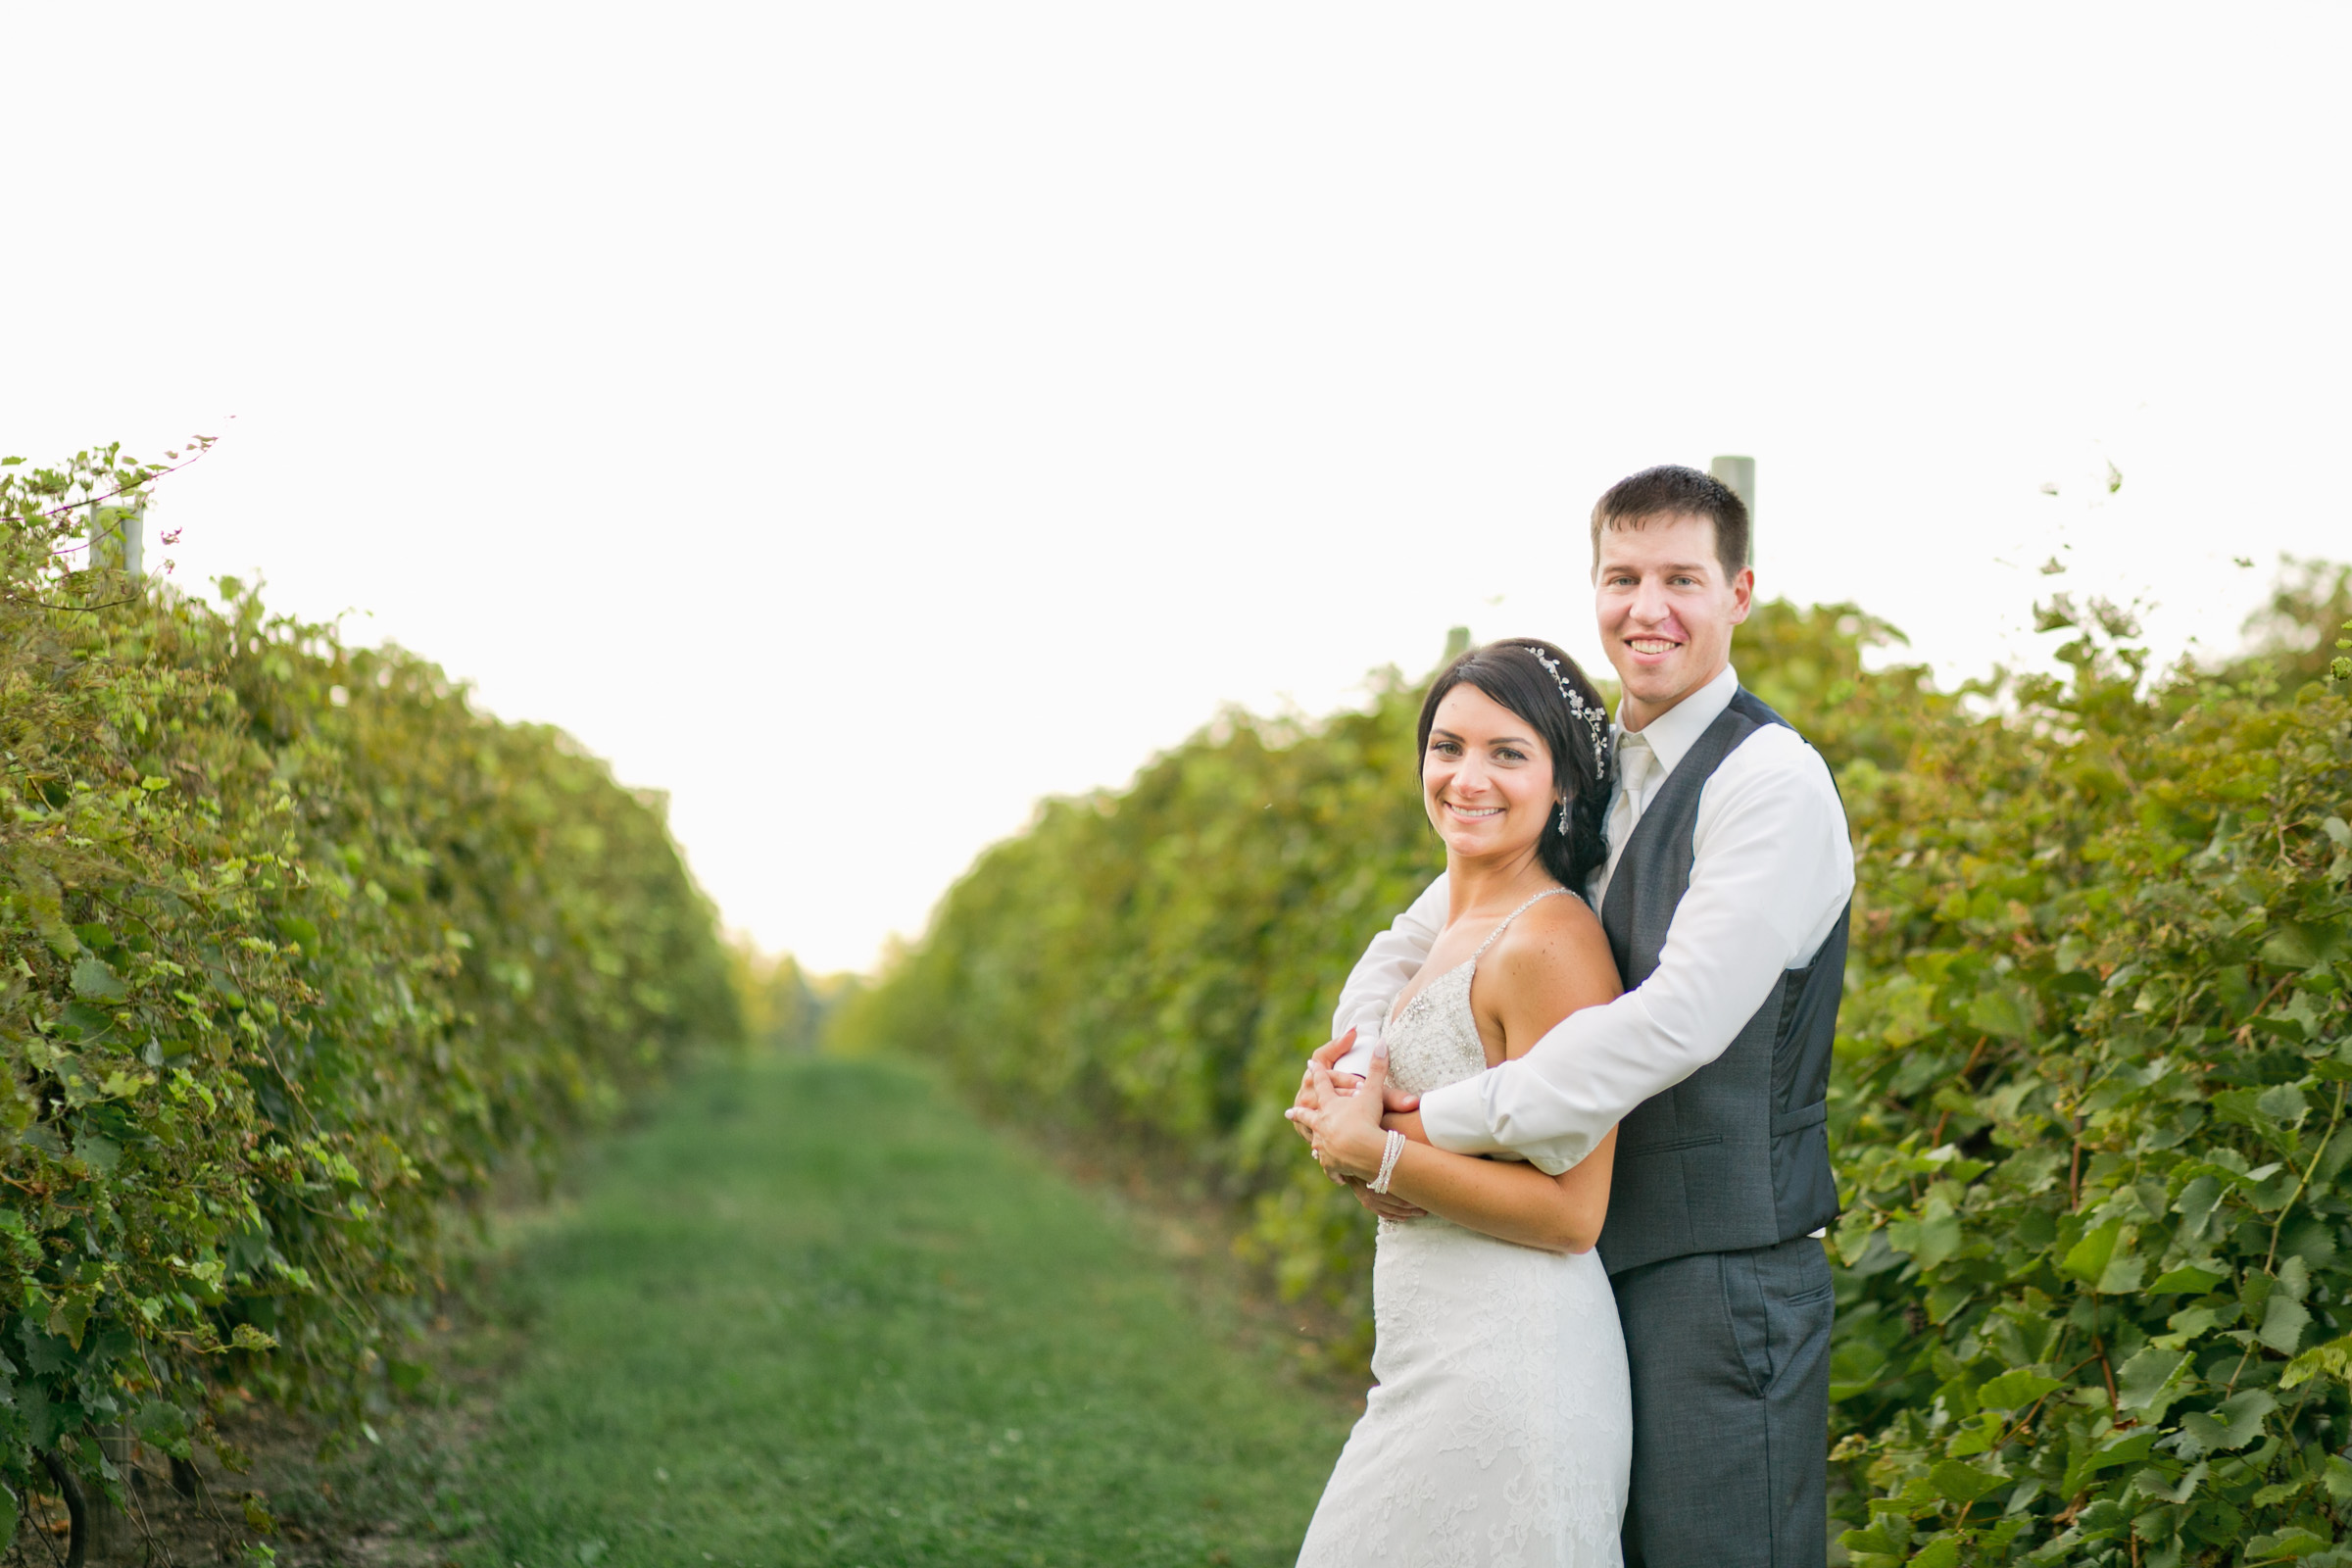 winery wedding locations Iowa vineyards bride and groom at sunset